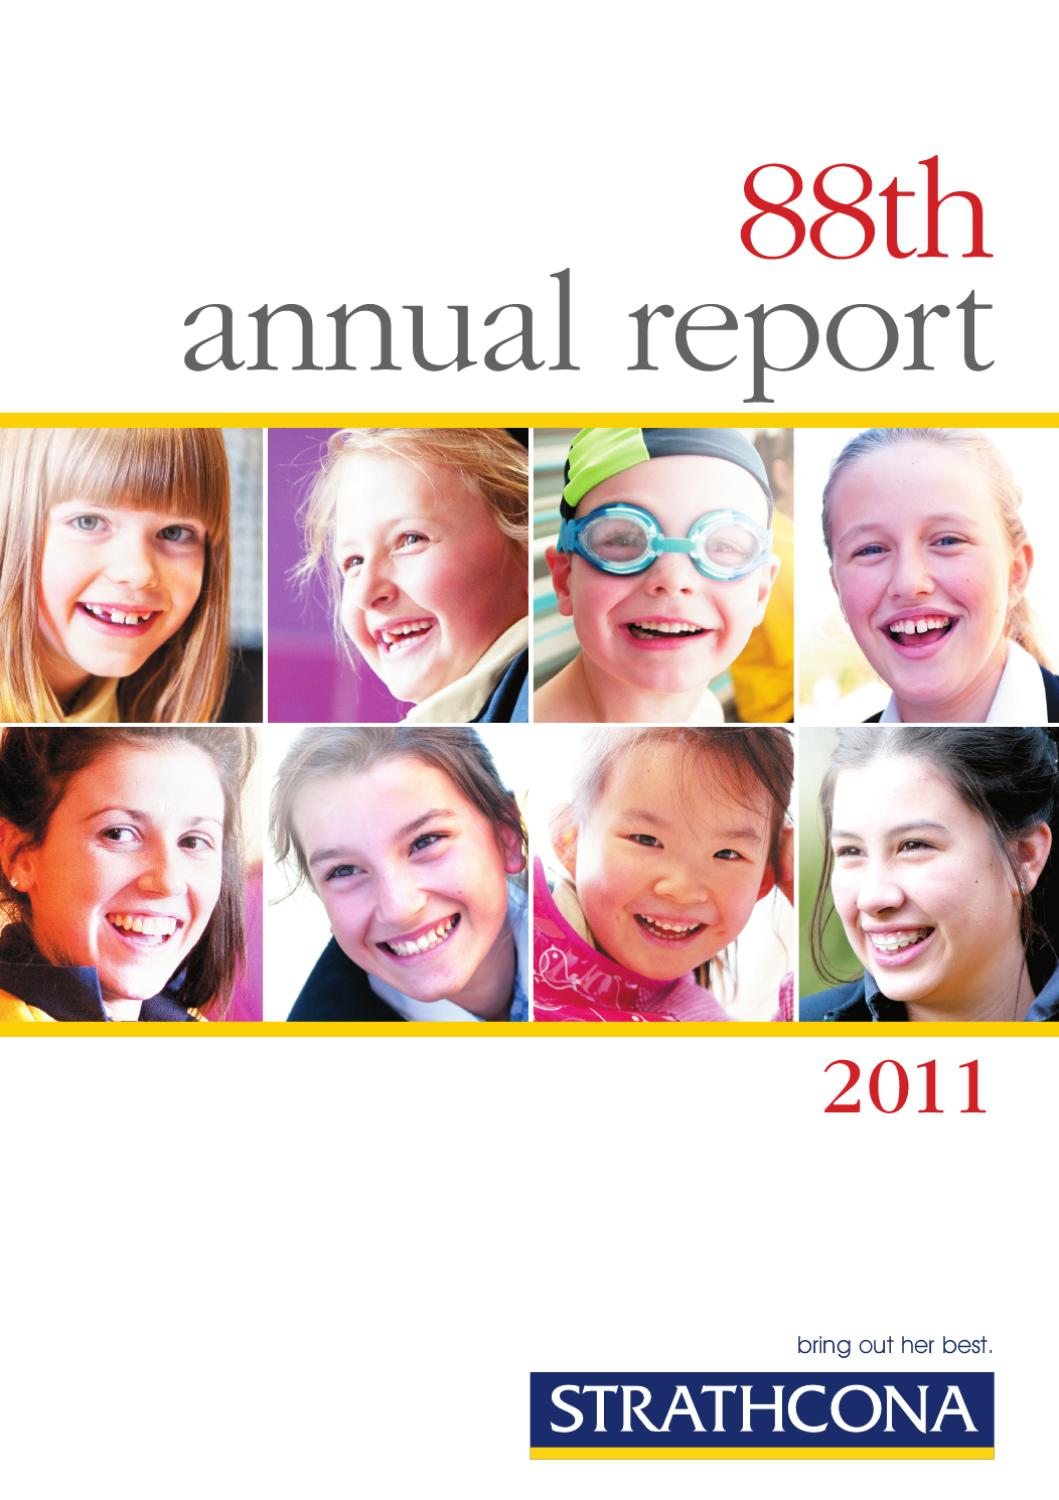 presenting fairholme highlights achievements by info design strathcona annual report 2011